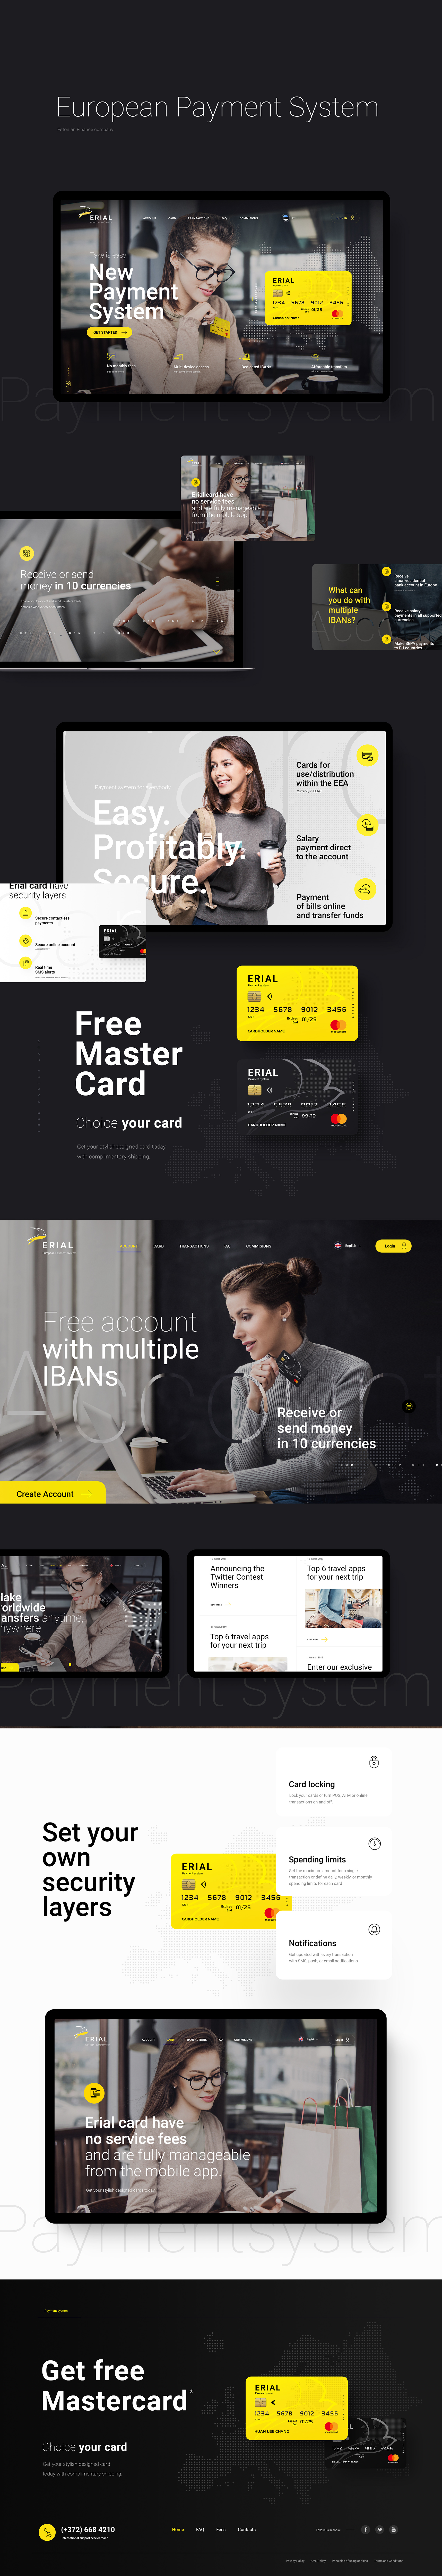 Payment card erial